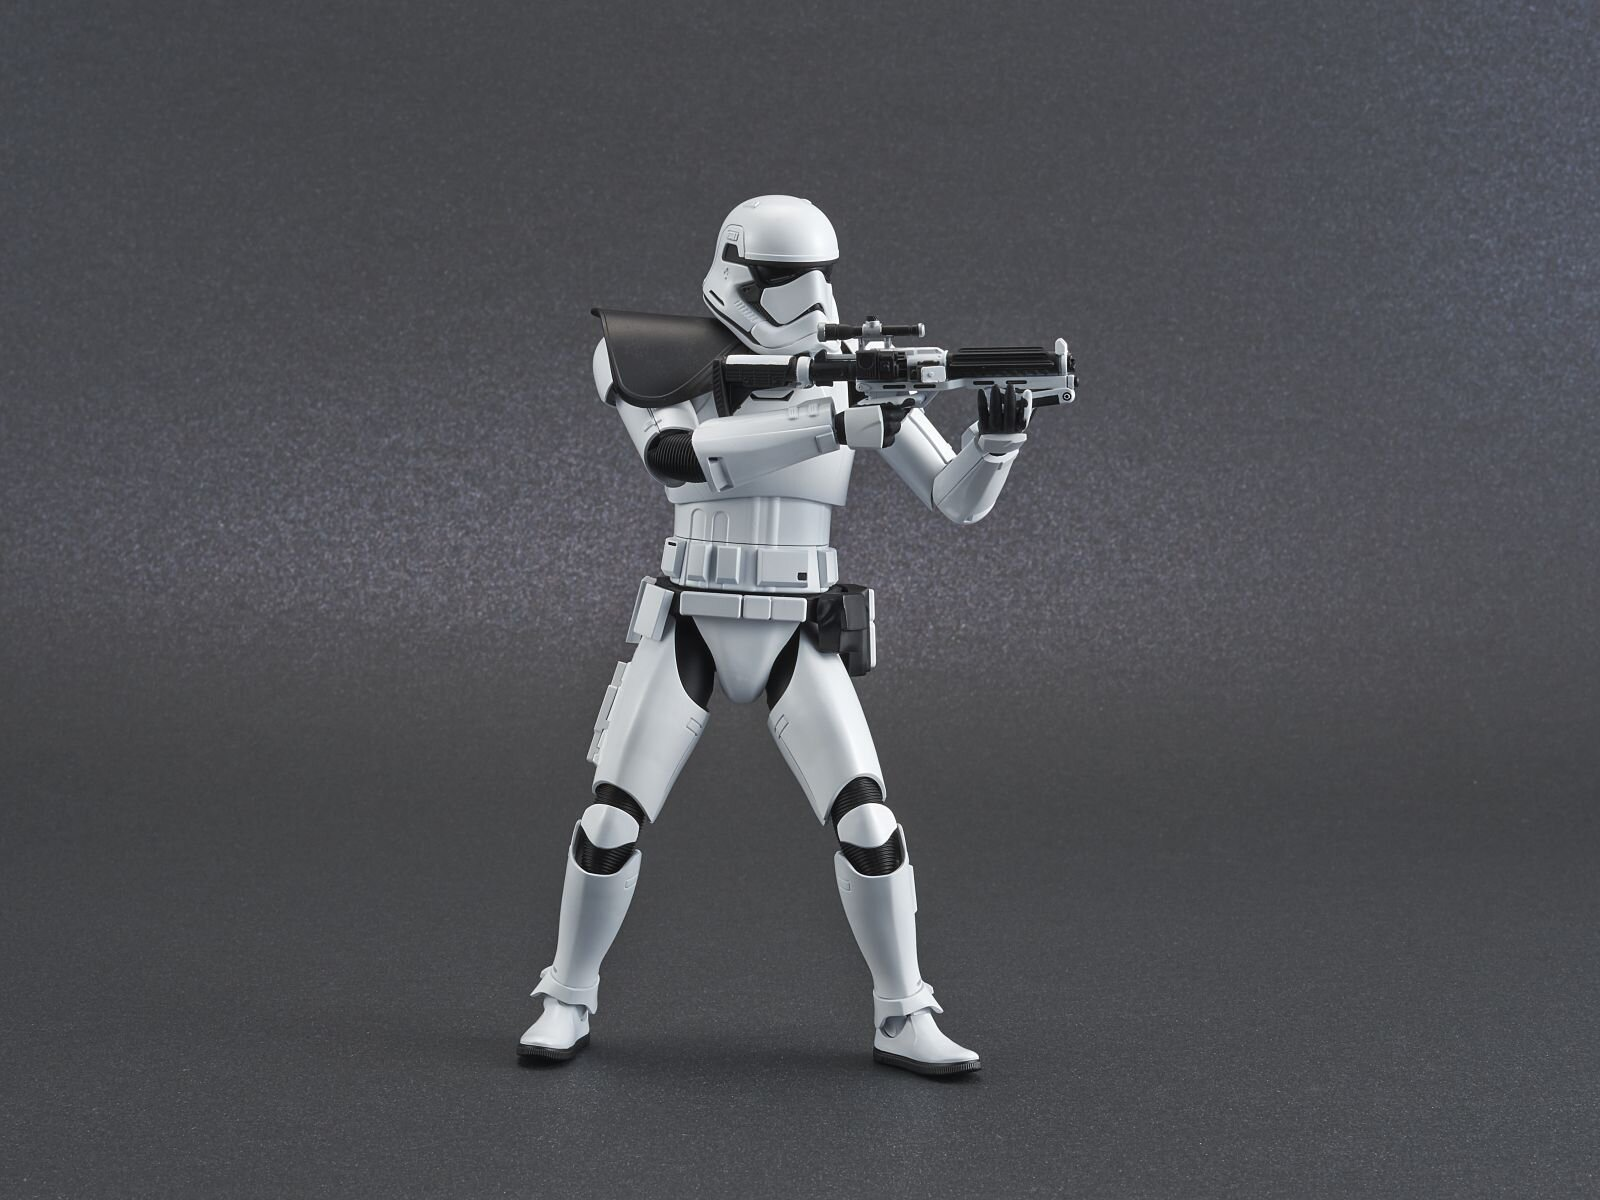 ep9_stormtrooper_action03.jpg